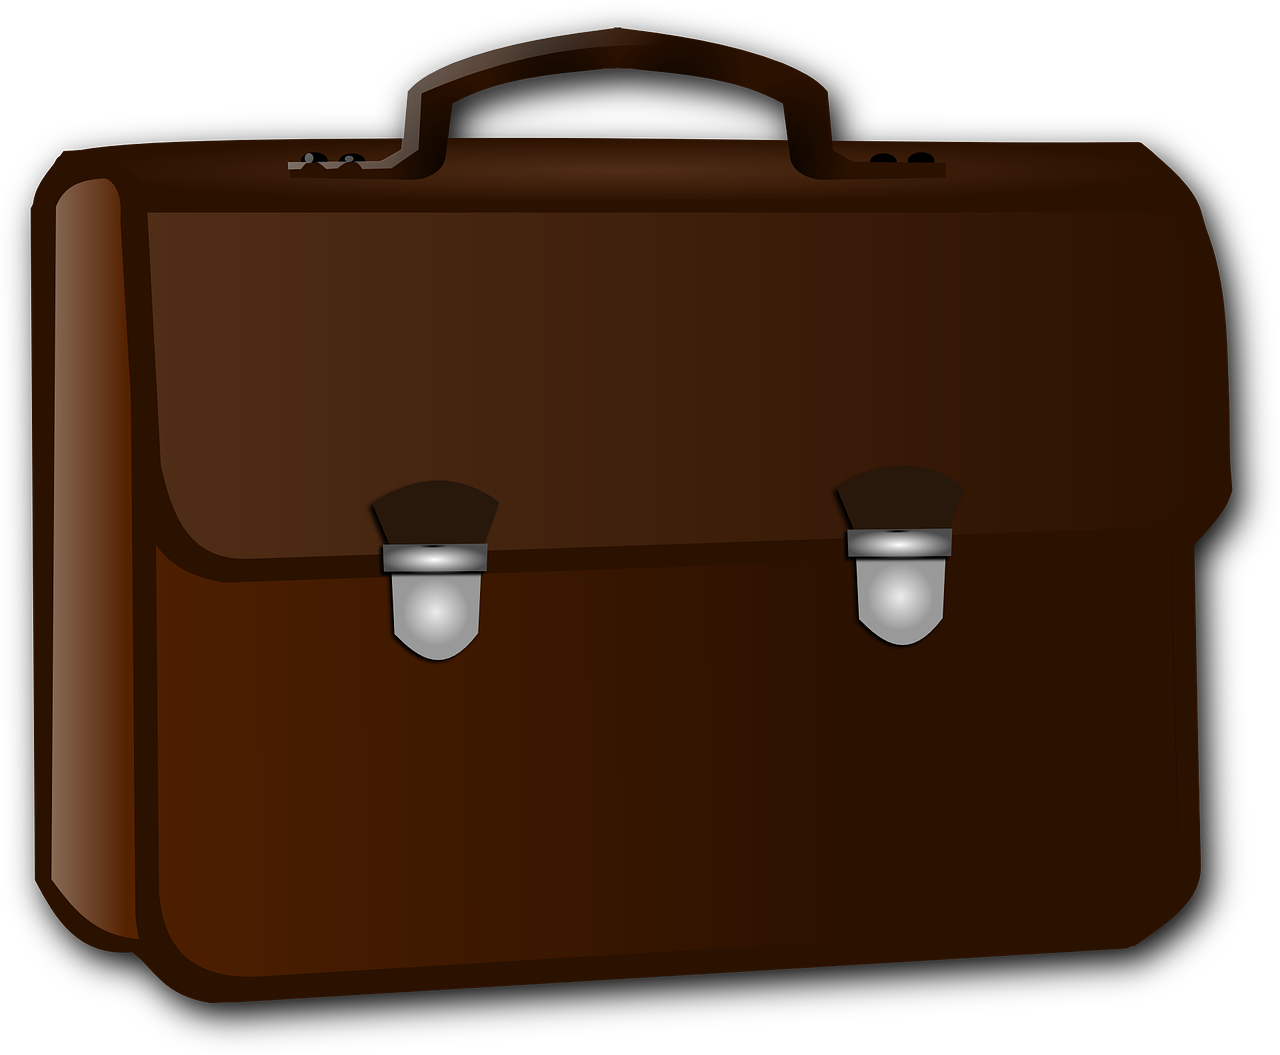 Cartoon briefcase png. Business brown image picpng